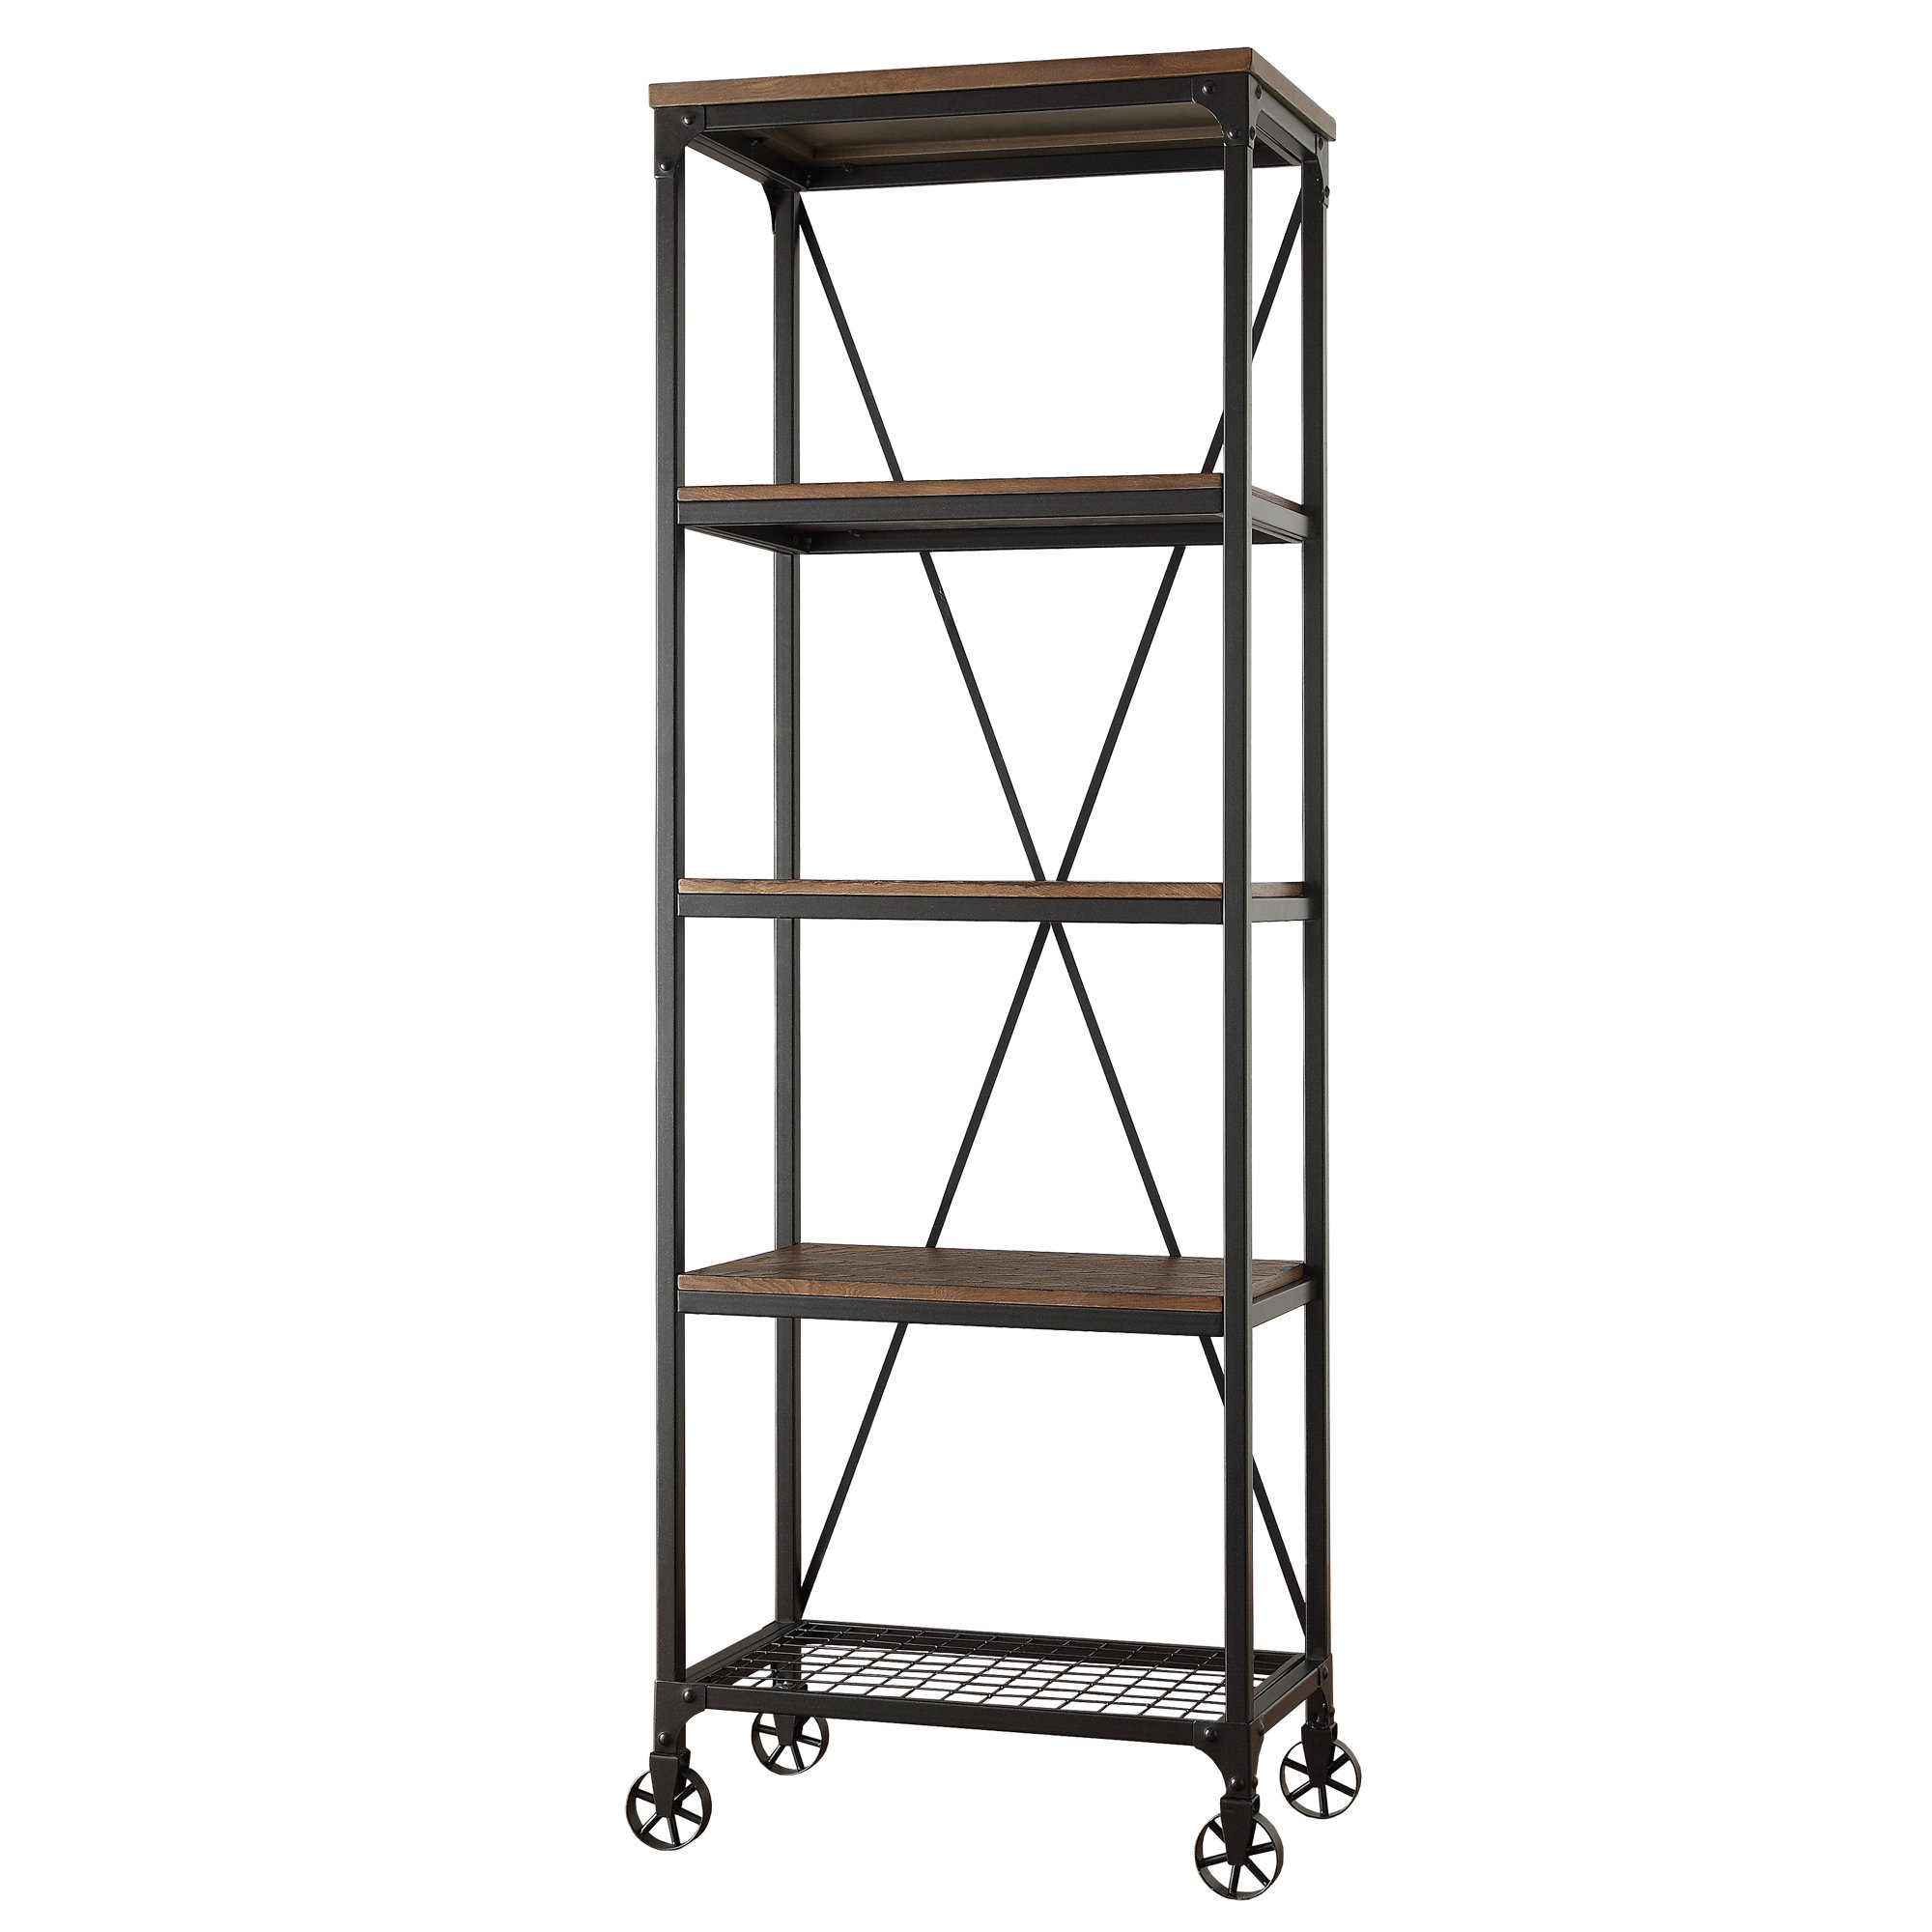 Kilmersdon Etagere Bookcase Intended For Most Popular Rocklin Etagere Bookcases (View 7 of 20)